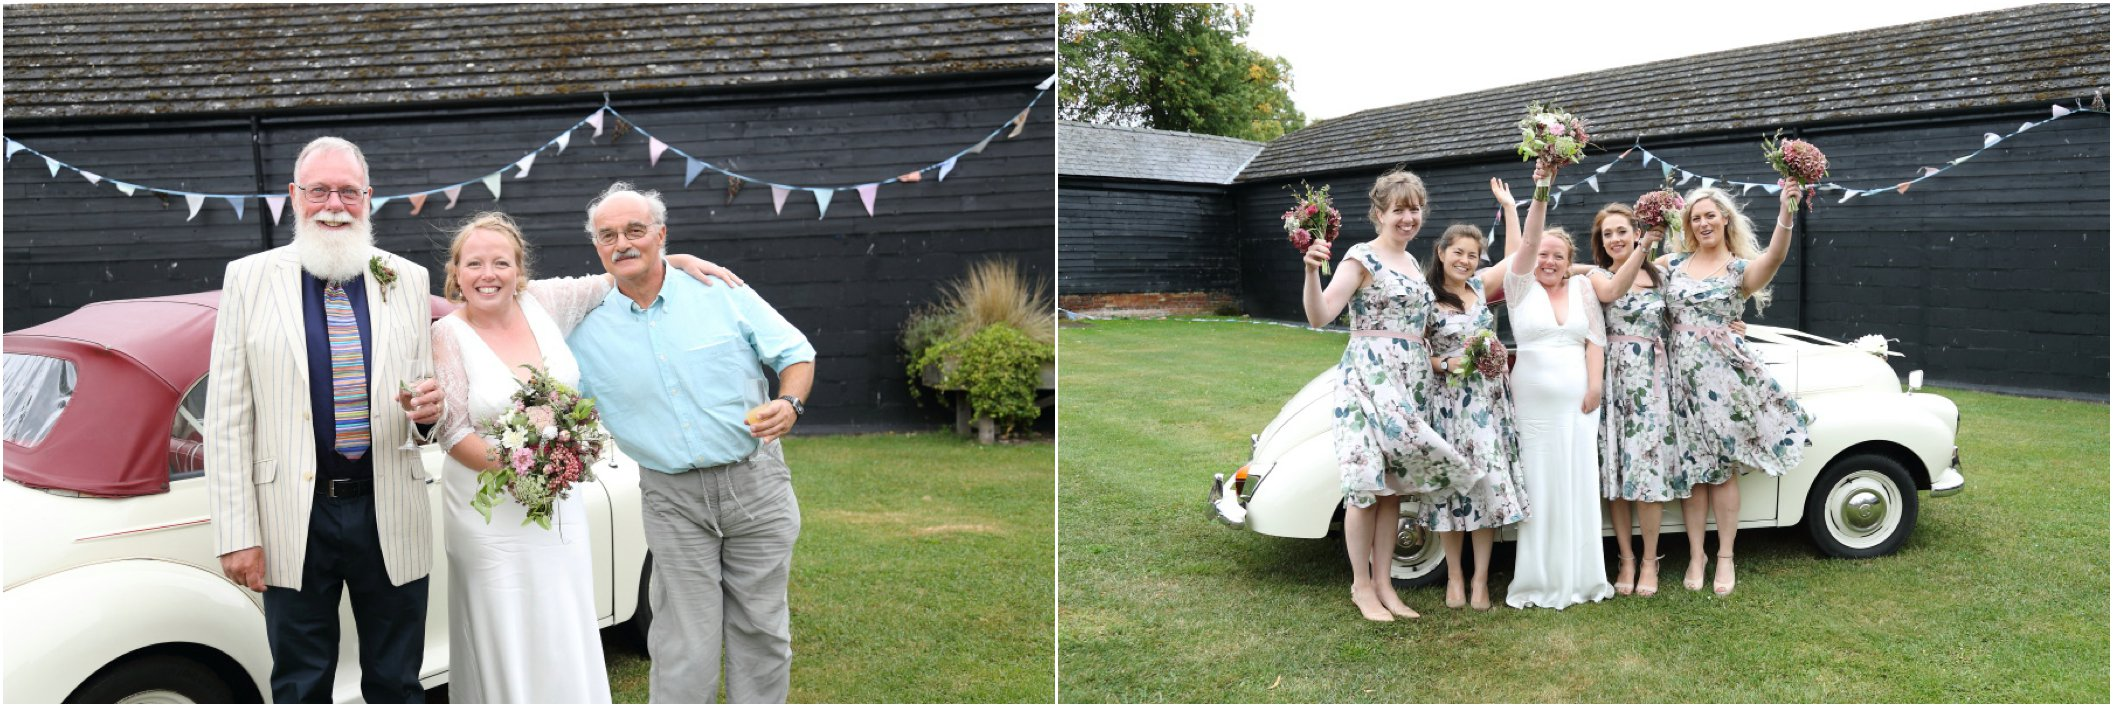 childerley wedding photography, cambridge. morris minor and floral bridesmaids dresses